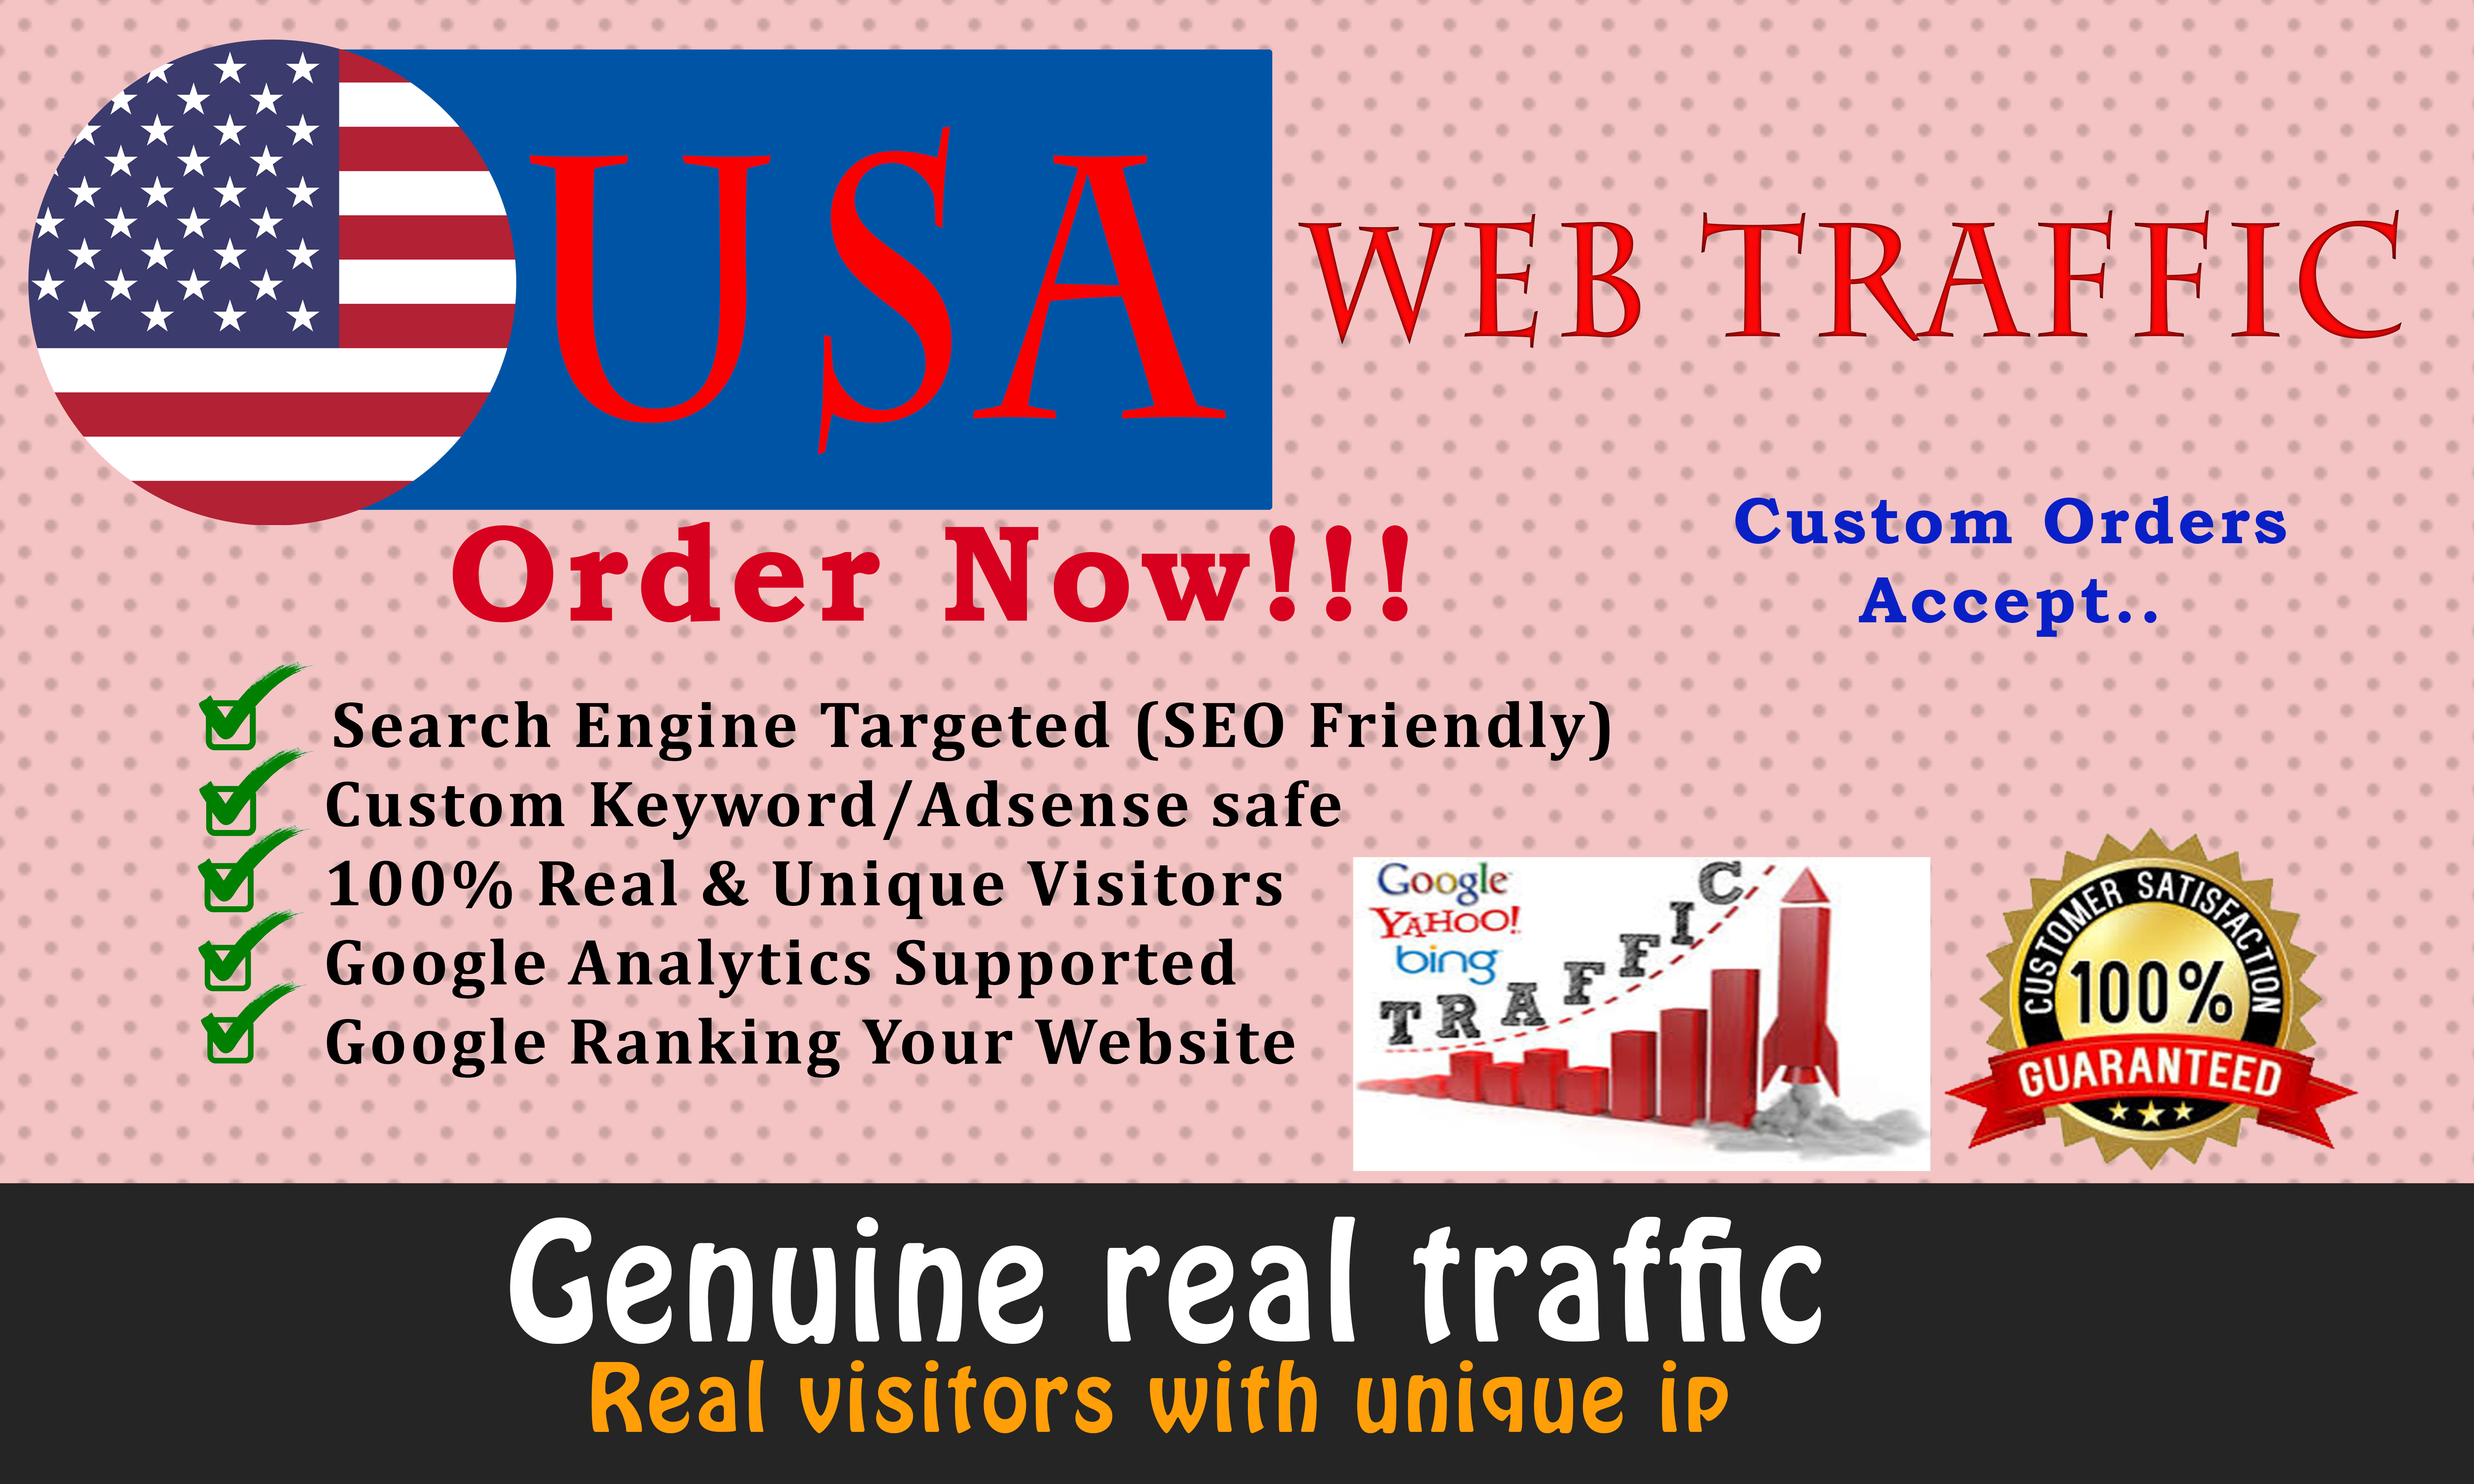 I will send real 25000 USA web traffic visitors to your website